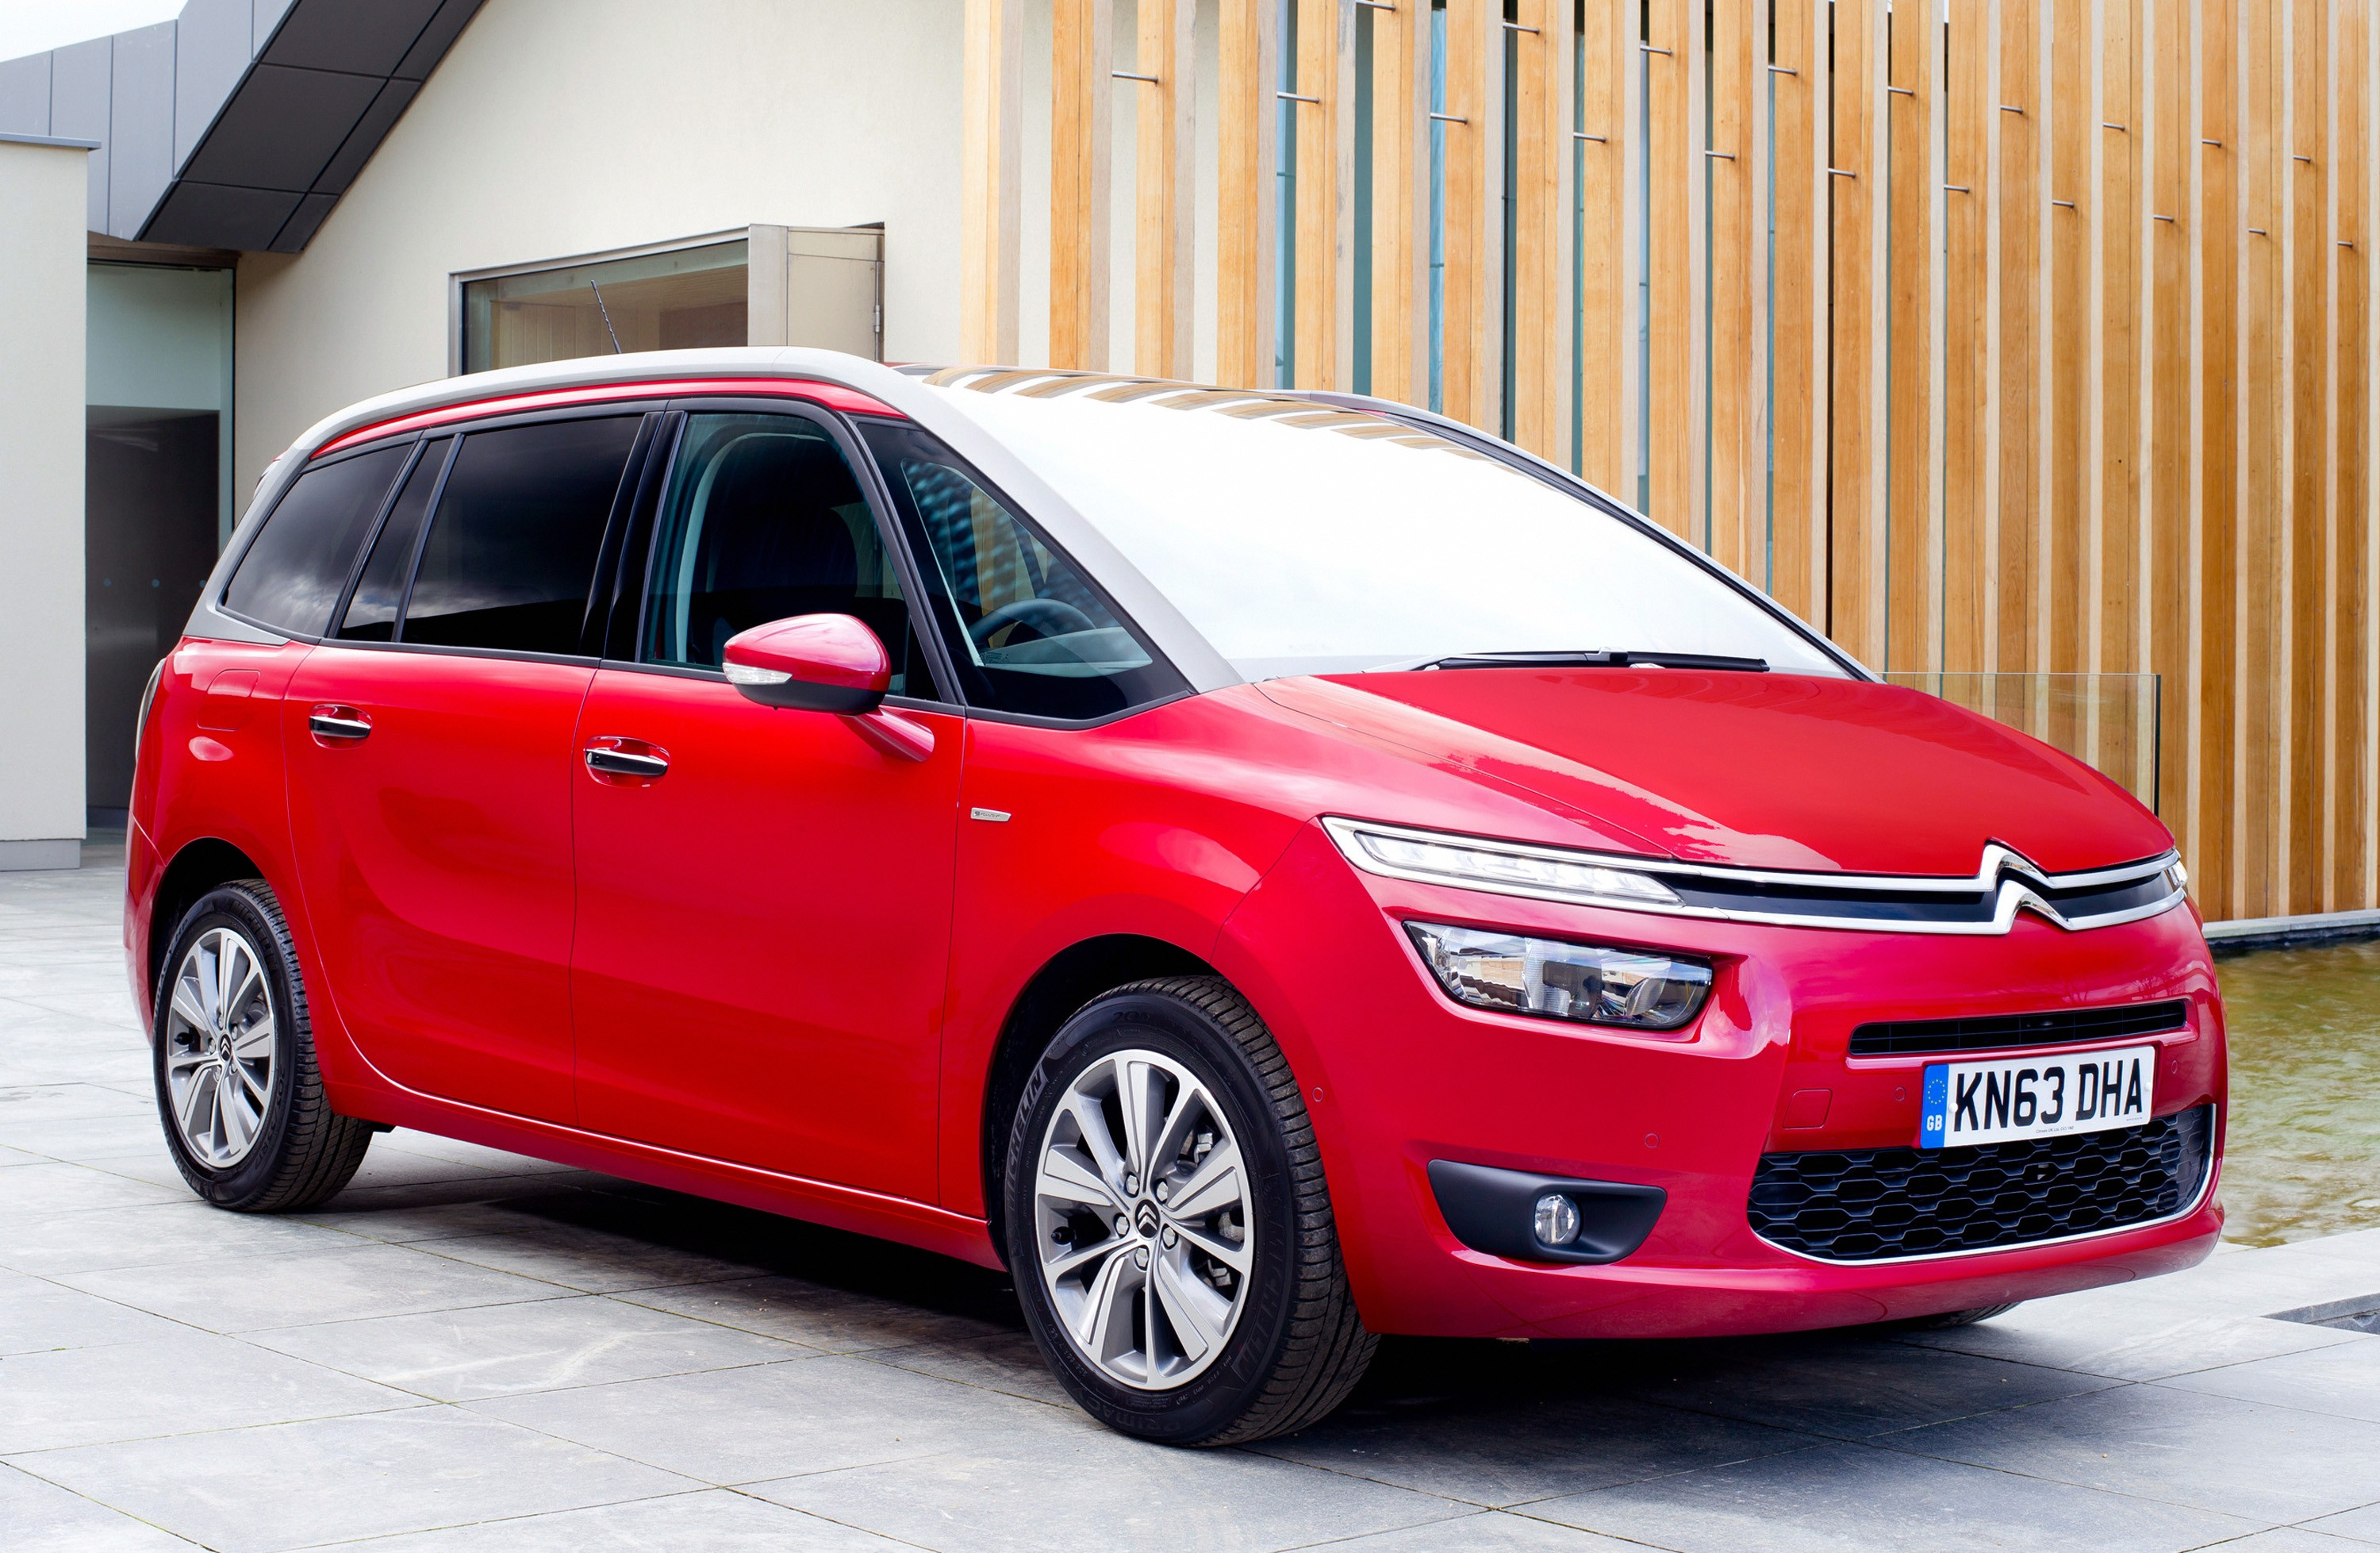 citroen grand c4 picasso specs 2013 2014 2015 2016 autoevolution. Black Bedroom Furniture Sets. Home Design Ideas